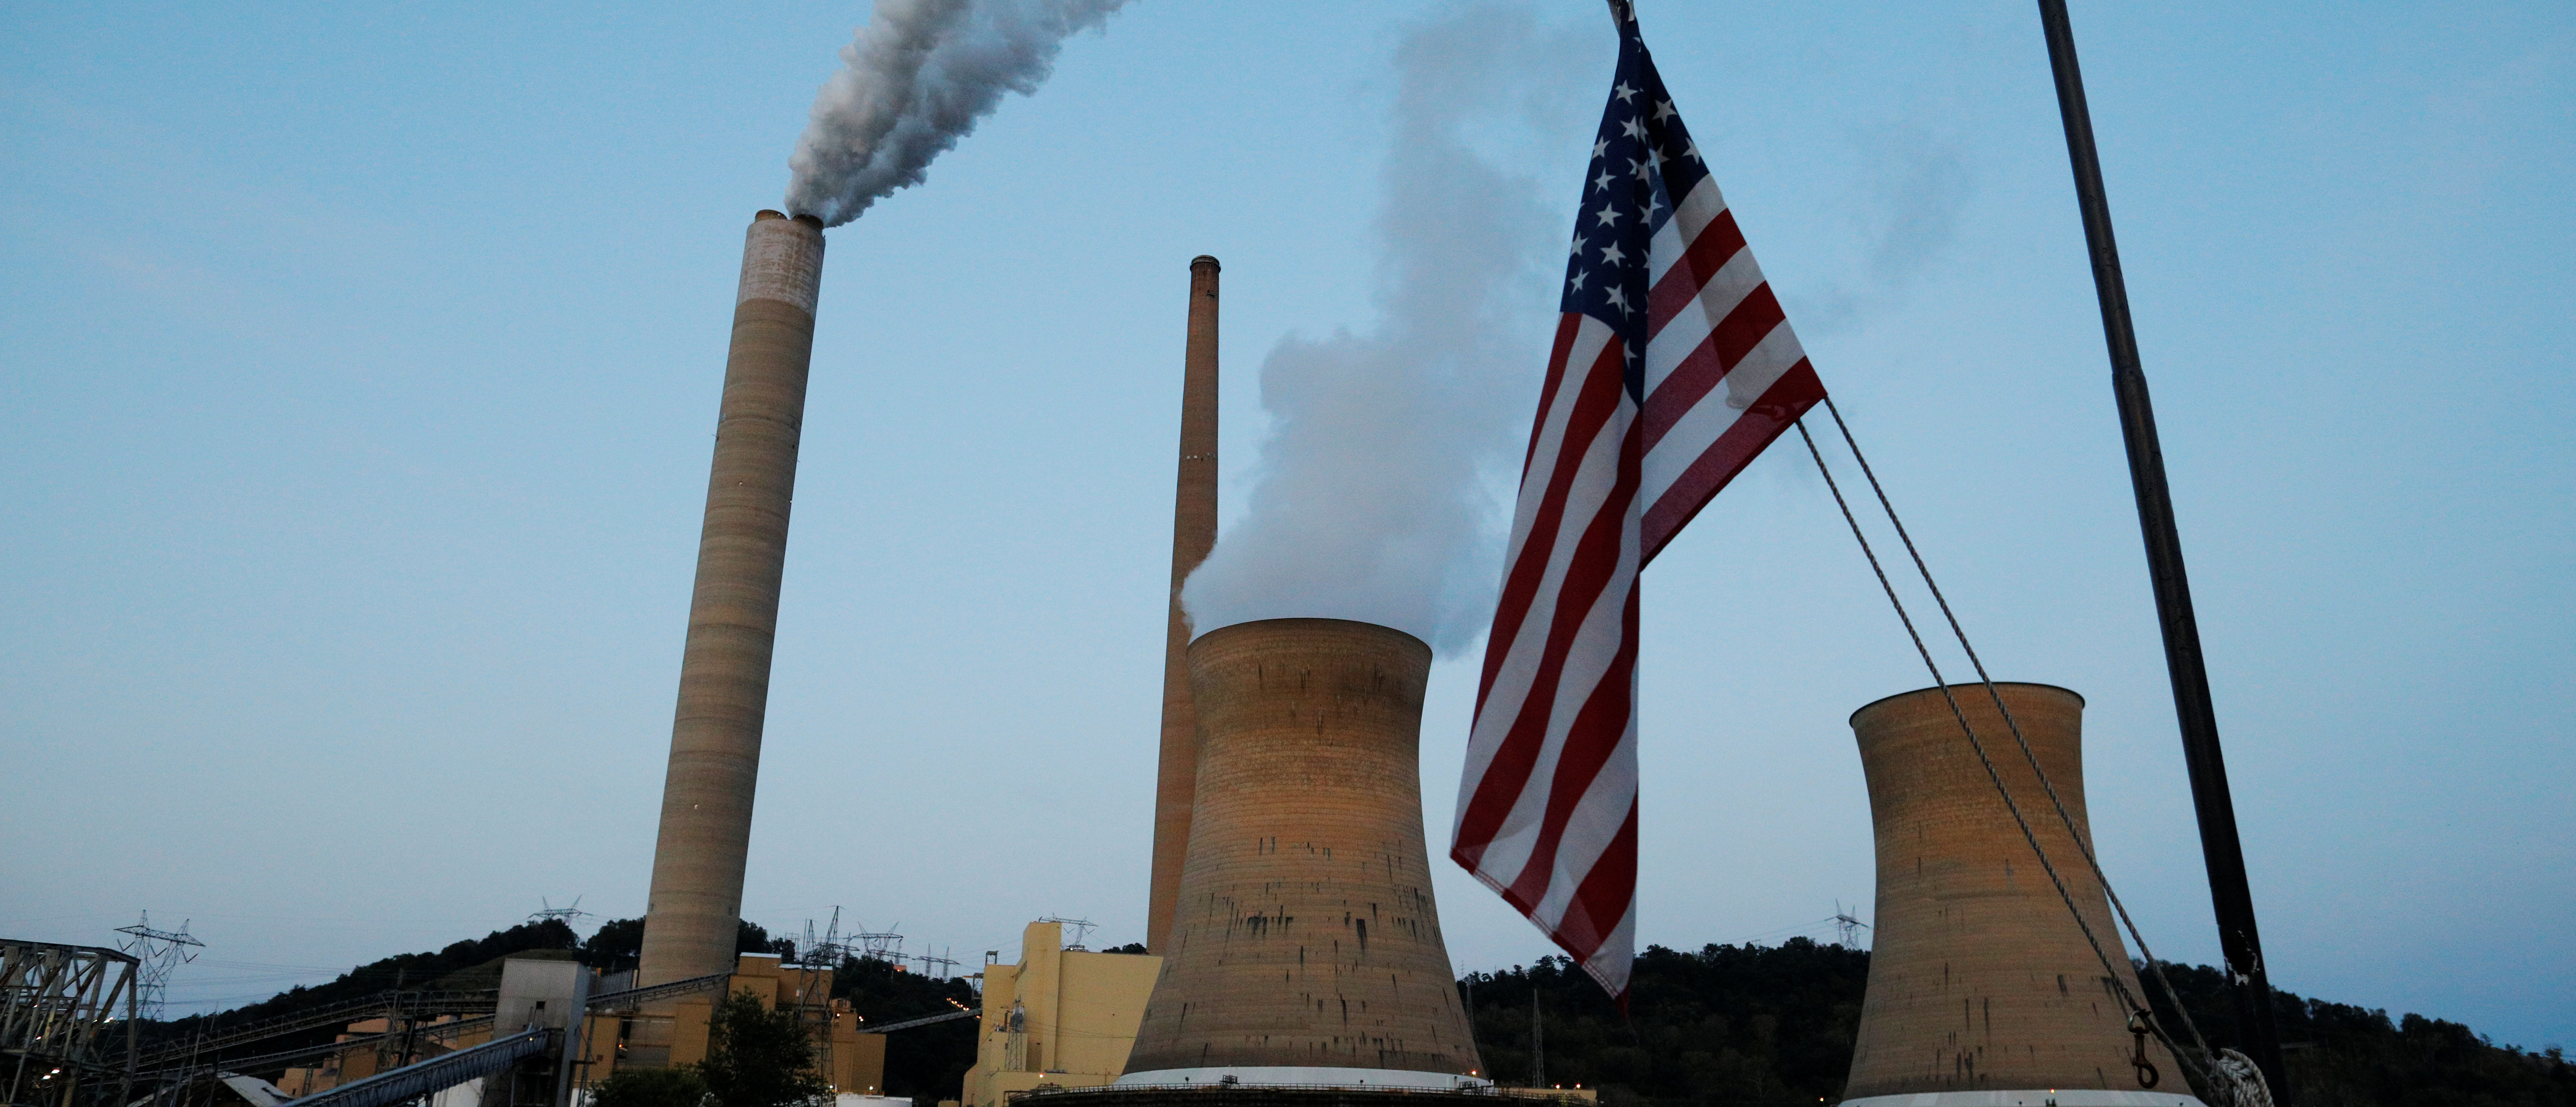 States Sue Trump Over Plans To Ding Obama-Era Environmental Regs, Triggering Legal Fight